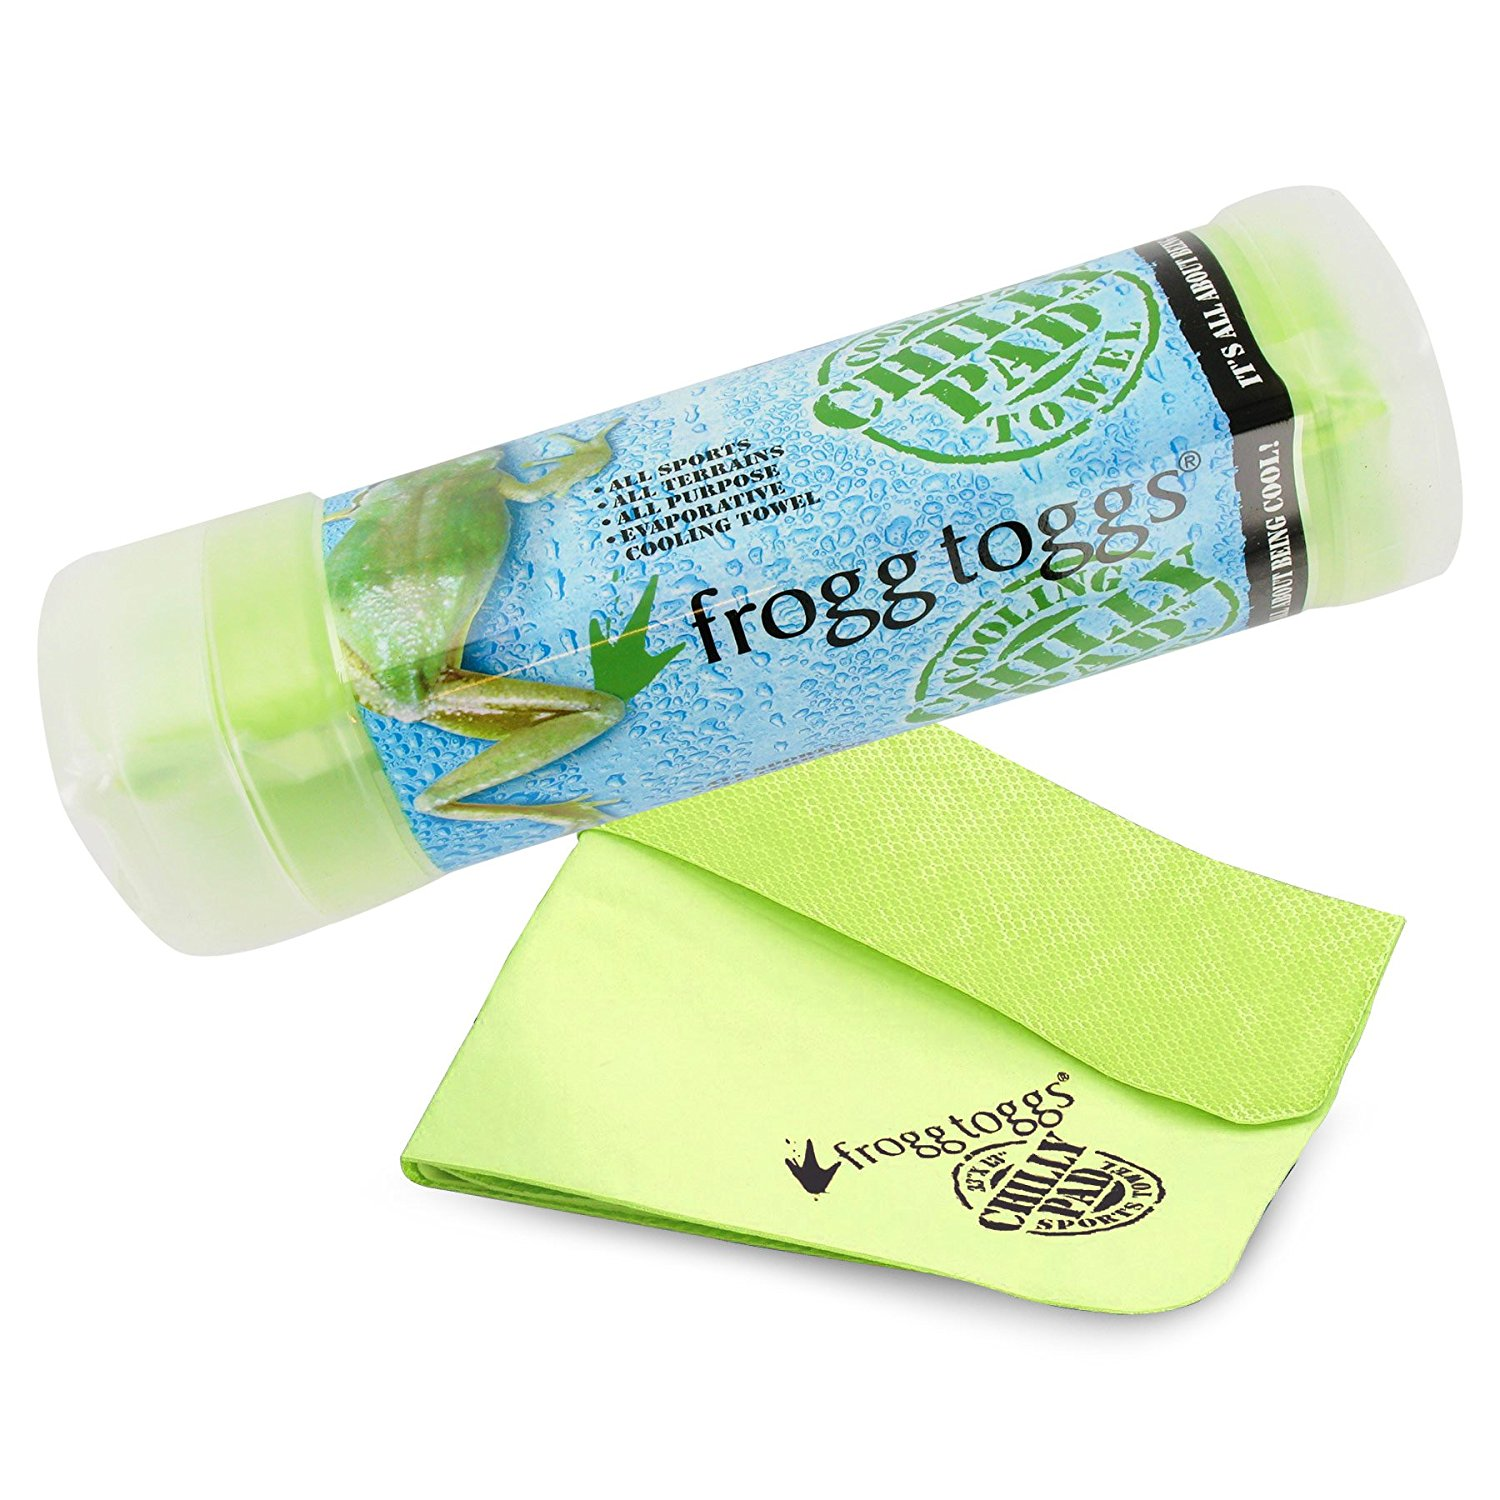 frogg toggs cooling towel